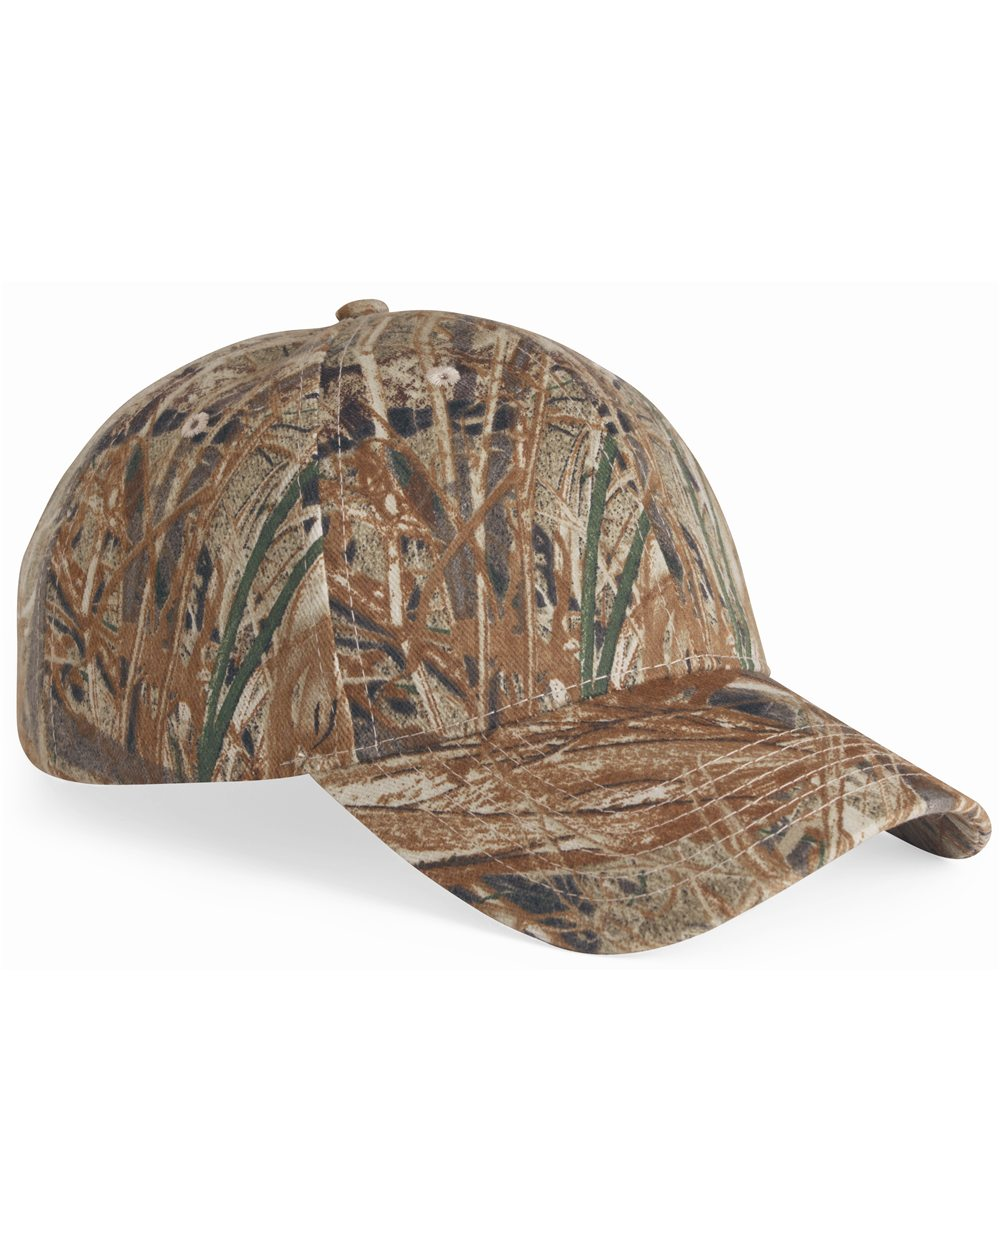 Kati LC15V - Licensed Camo Cap With Velcro